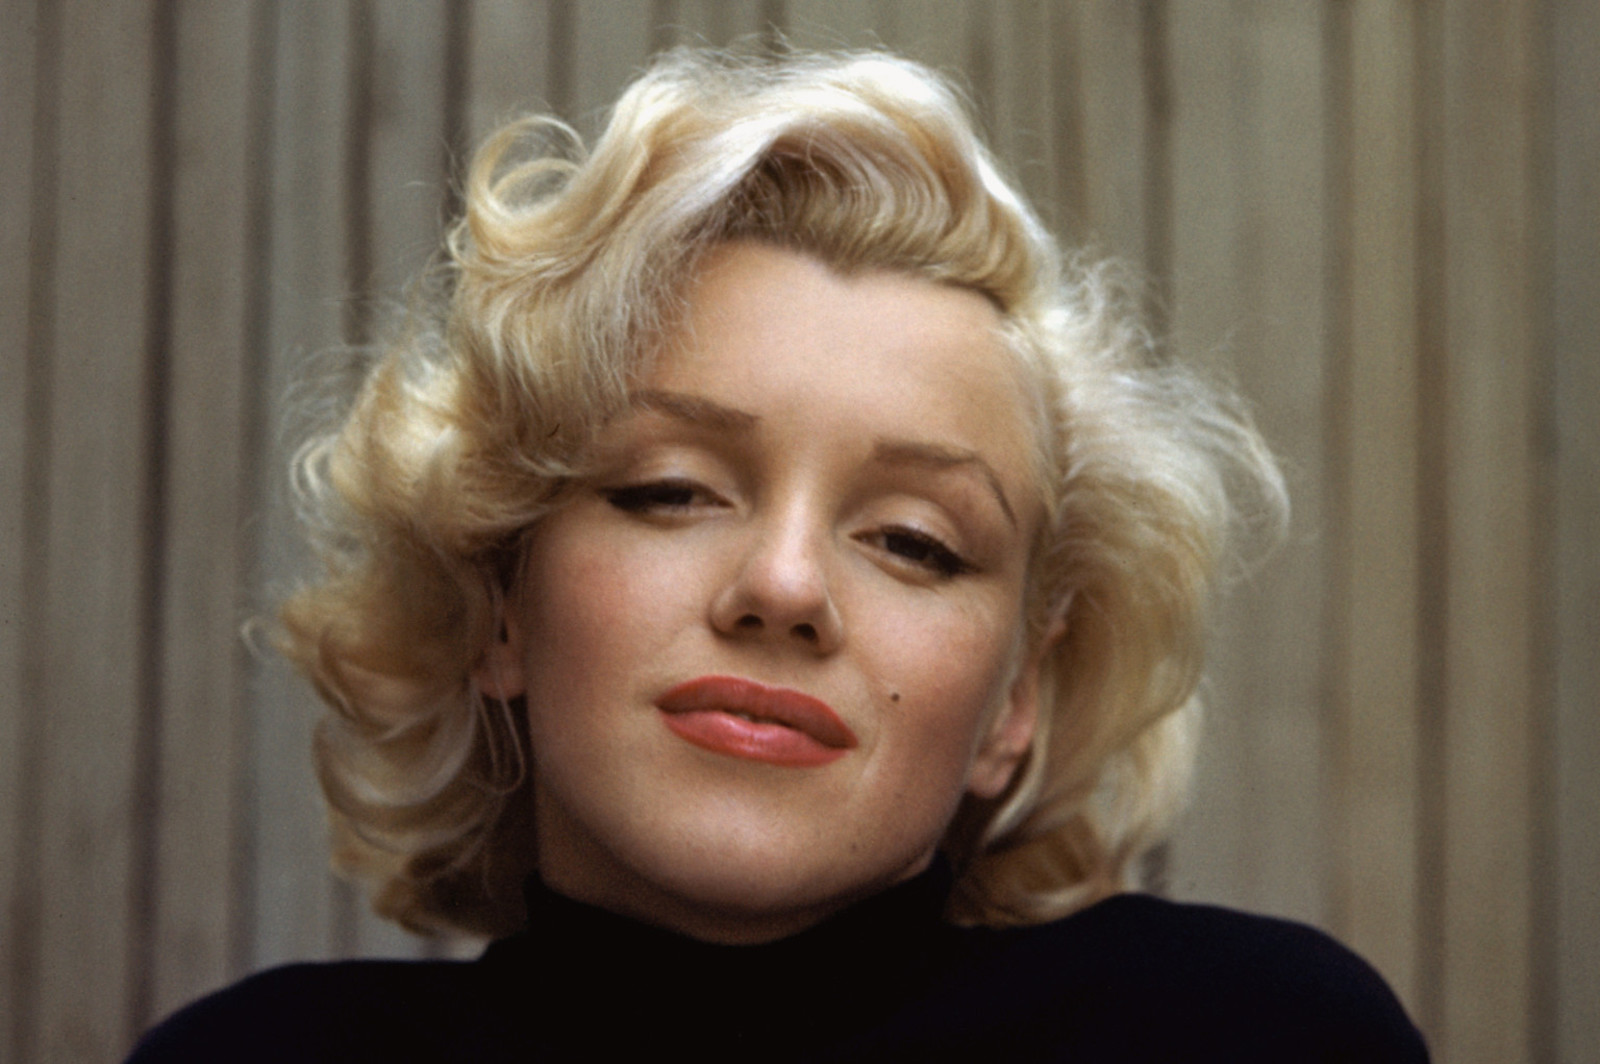 marilyn-monroe-headshot-Nude-Photos-of-Marilyn-Monroe-Go-Up-for-Auction-main-image.jpg